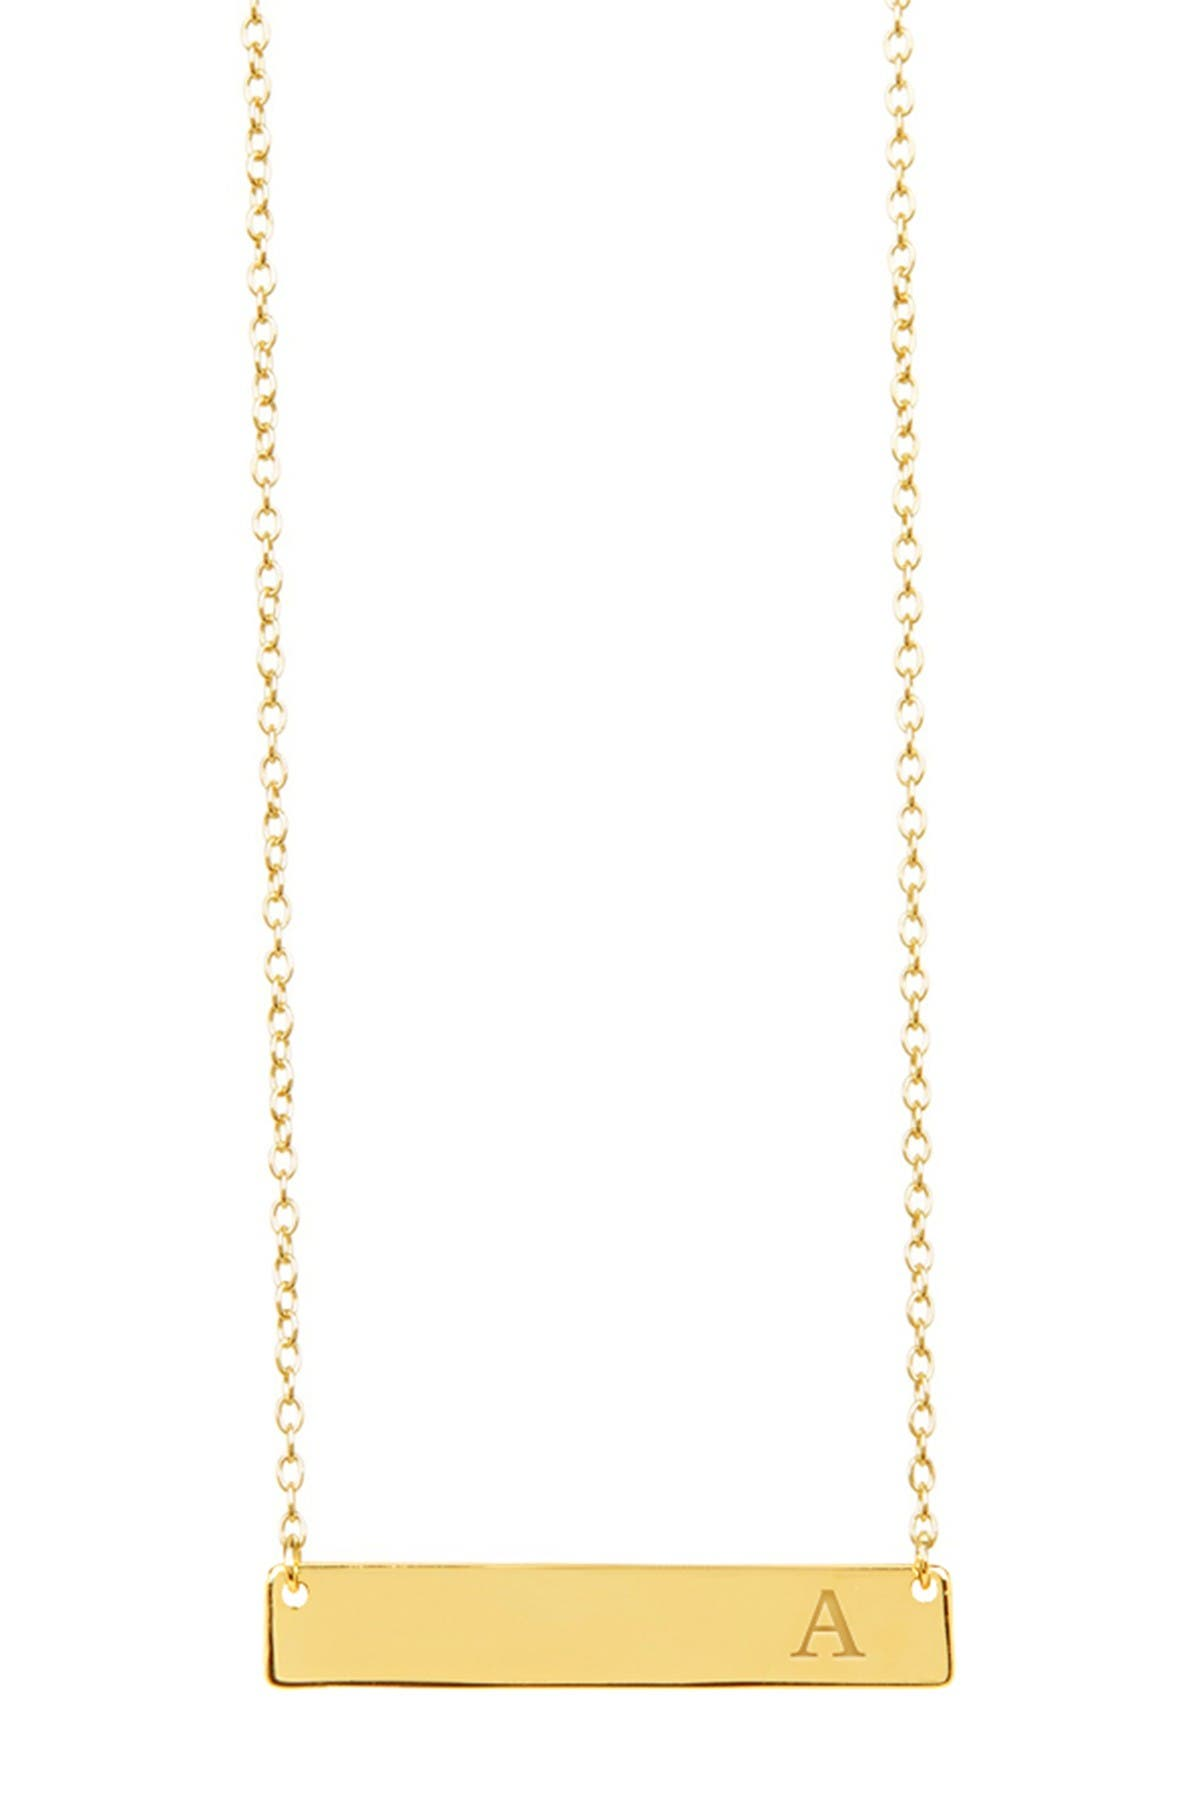 Image of Sterling Forever 14K Yellow Gold Vermeil Bar Initial Necklace - Multiple Letters Available